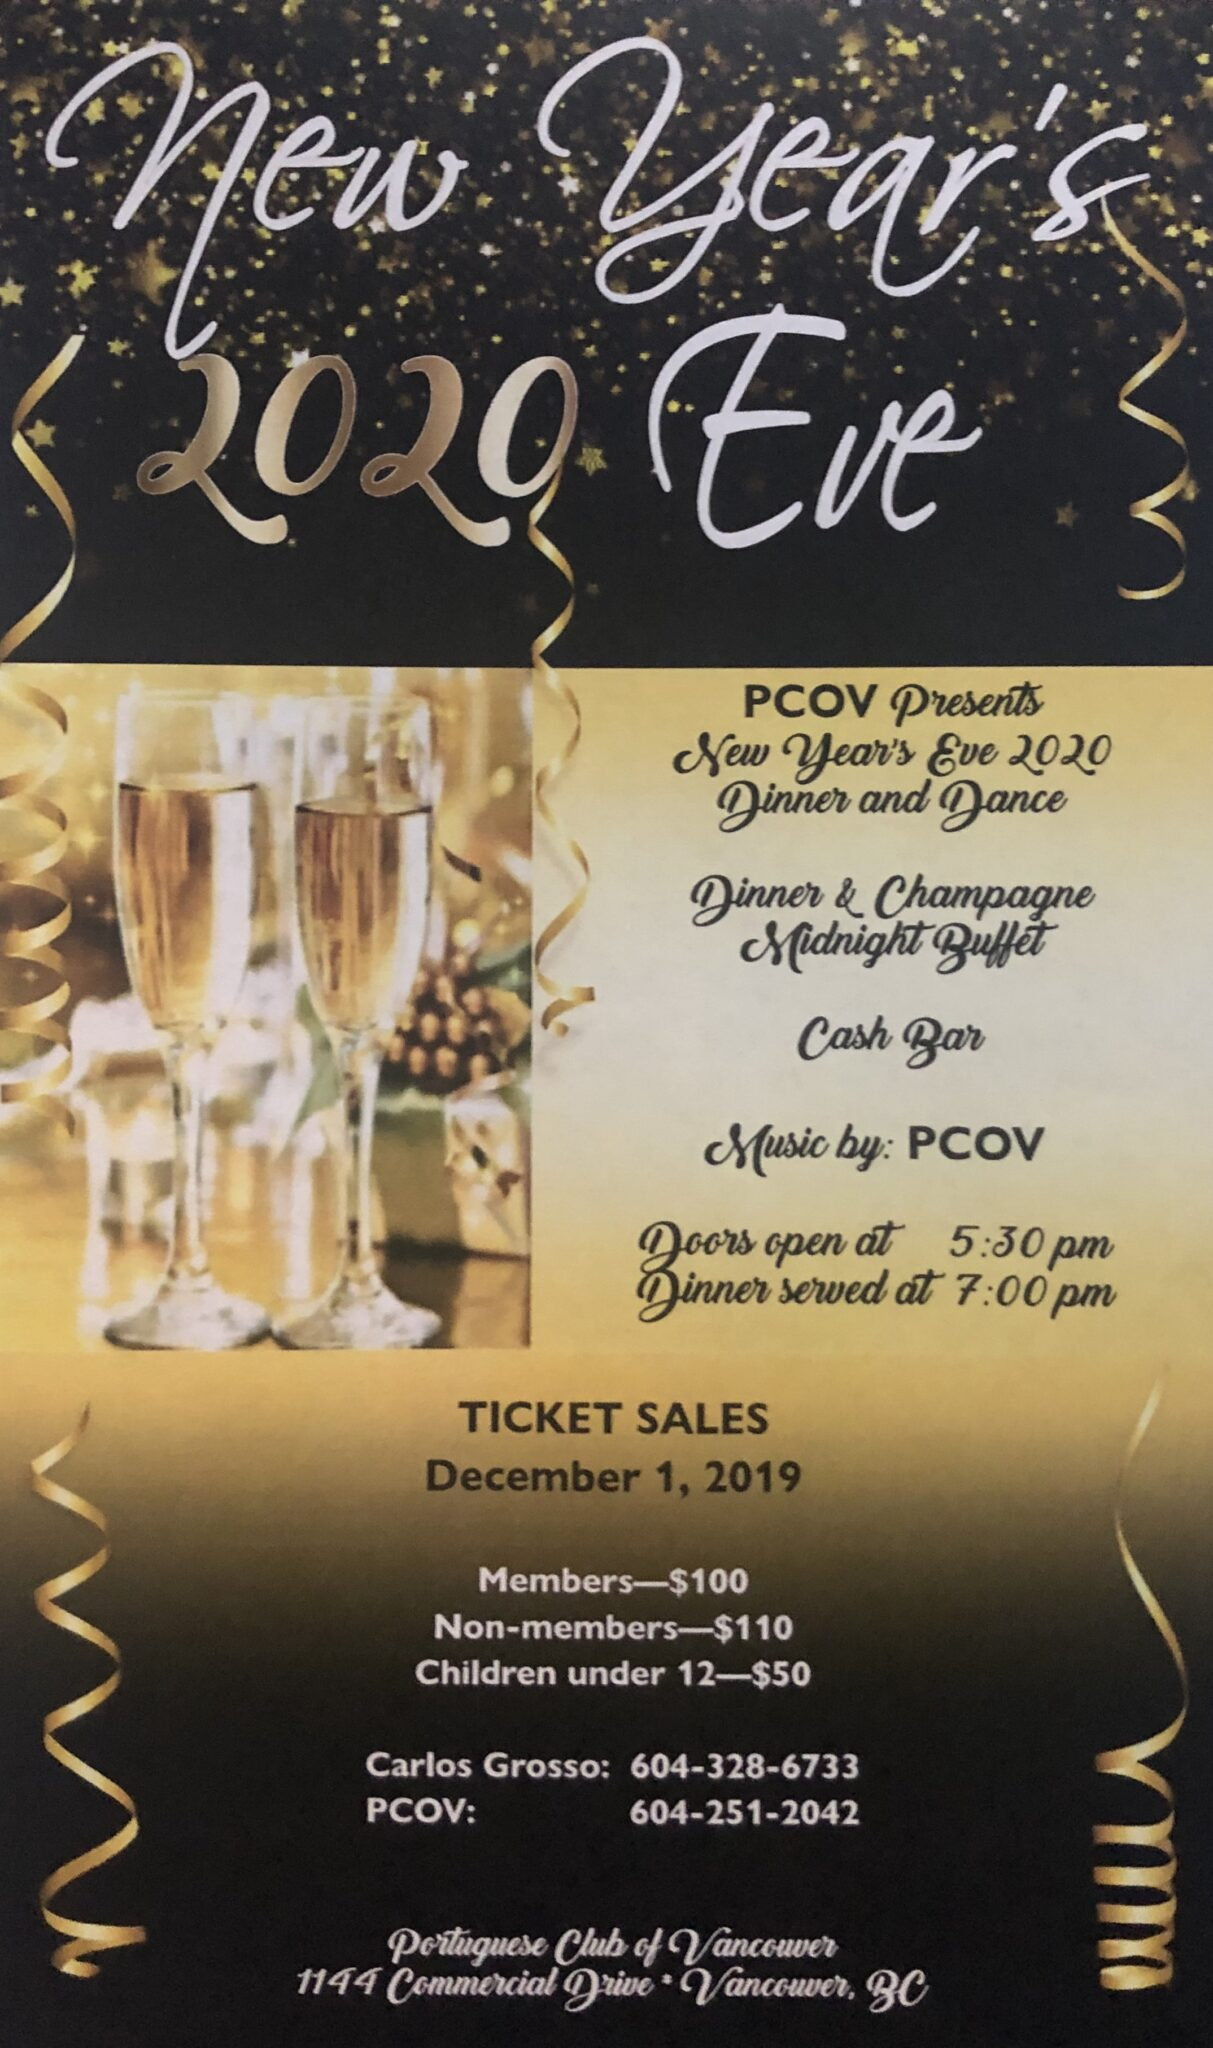 New Year's Party at PCOV